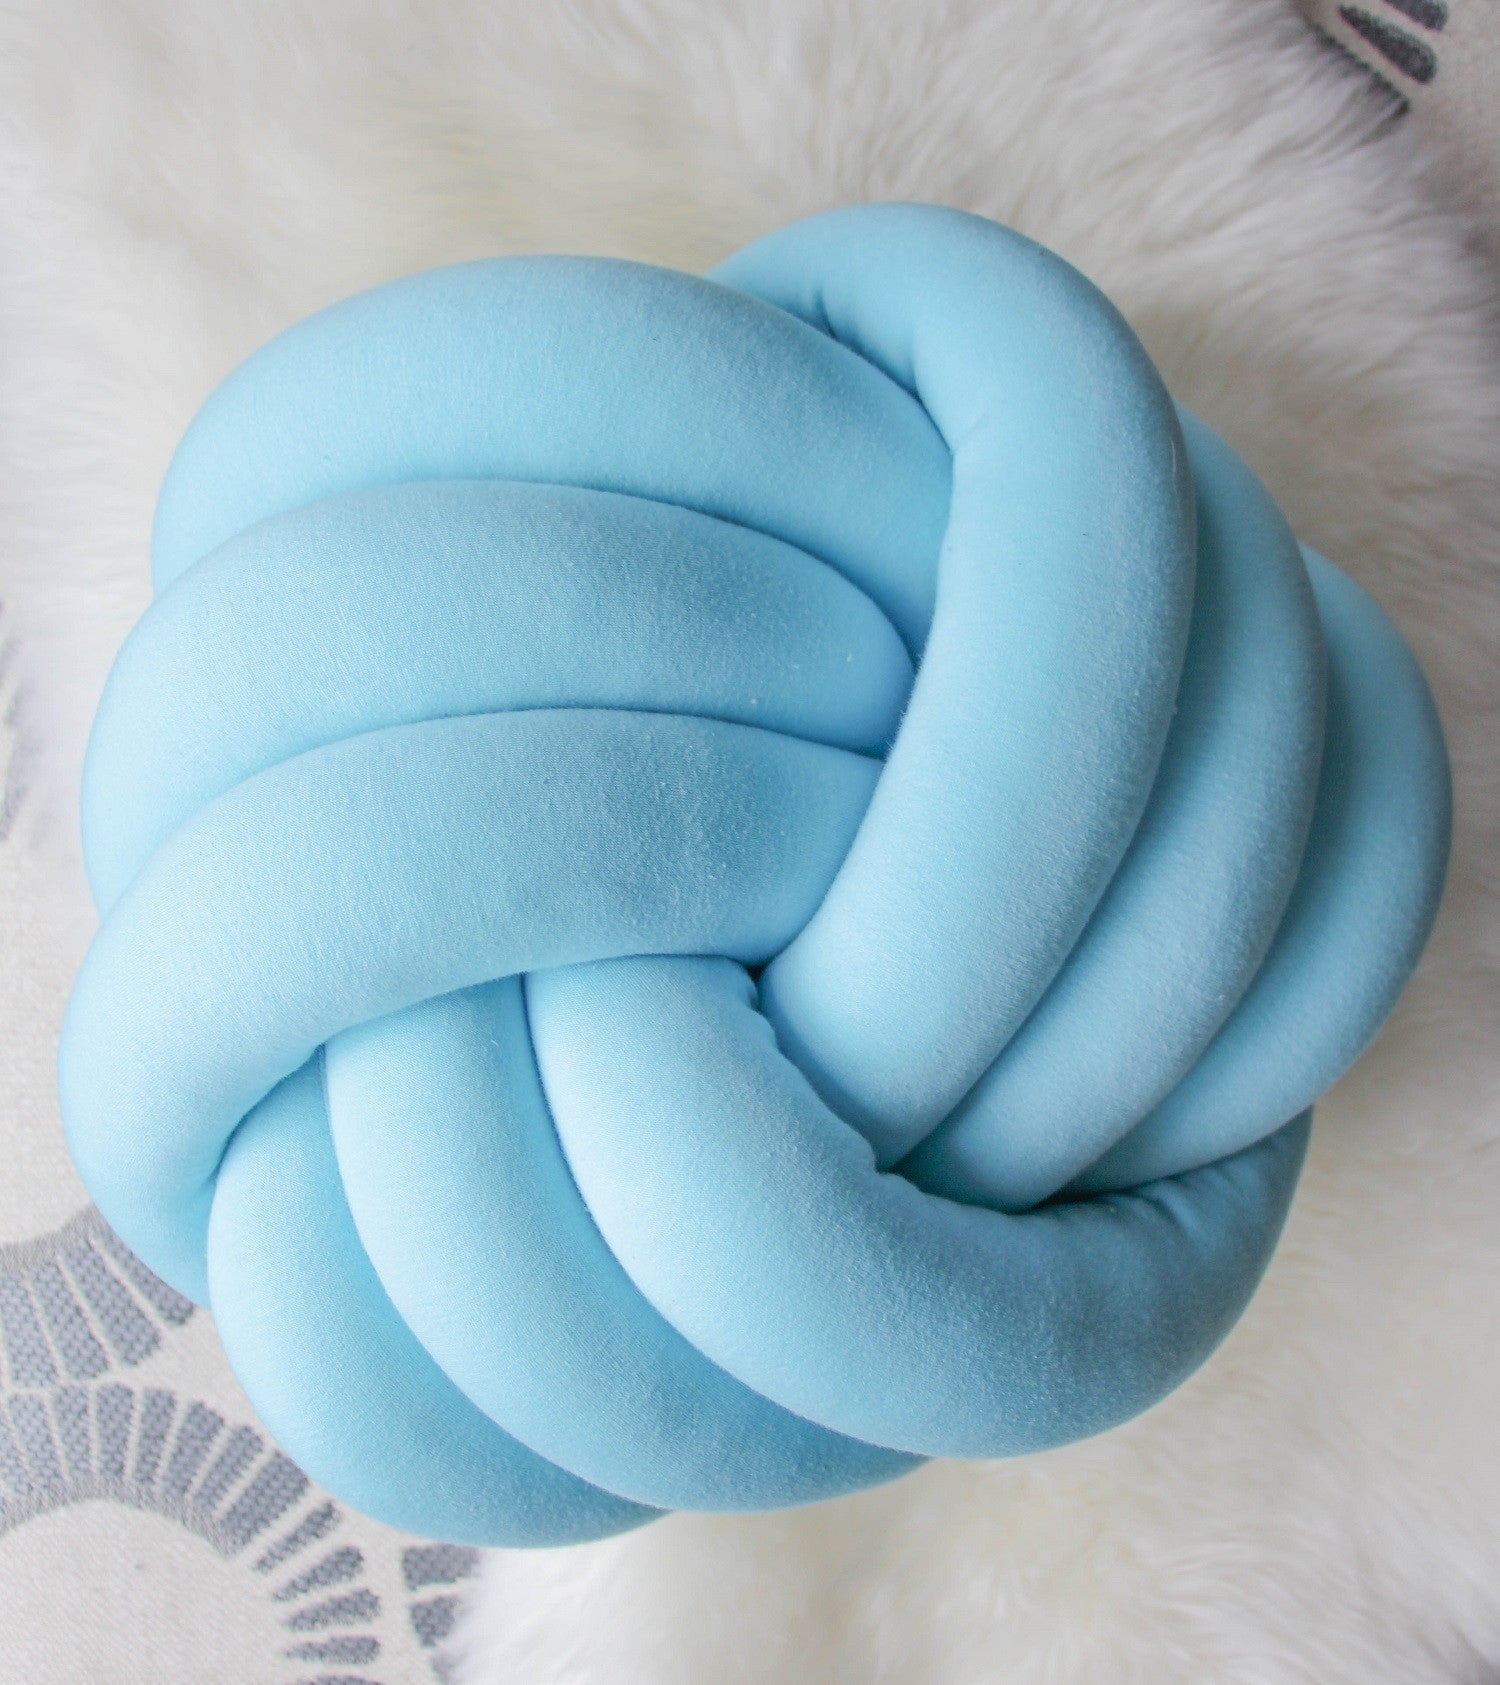 Swirl Knot Pillow - See more Knot Pillows & Cushions at JujuAndJake.com